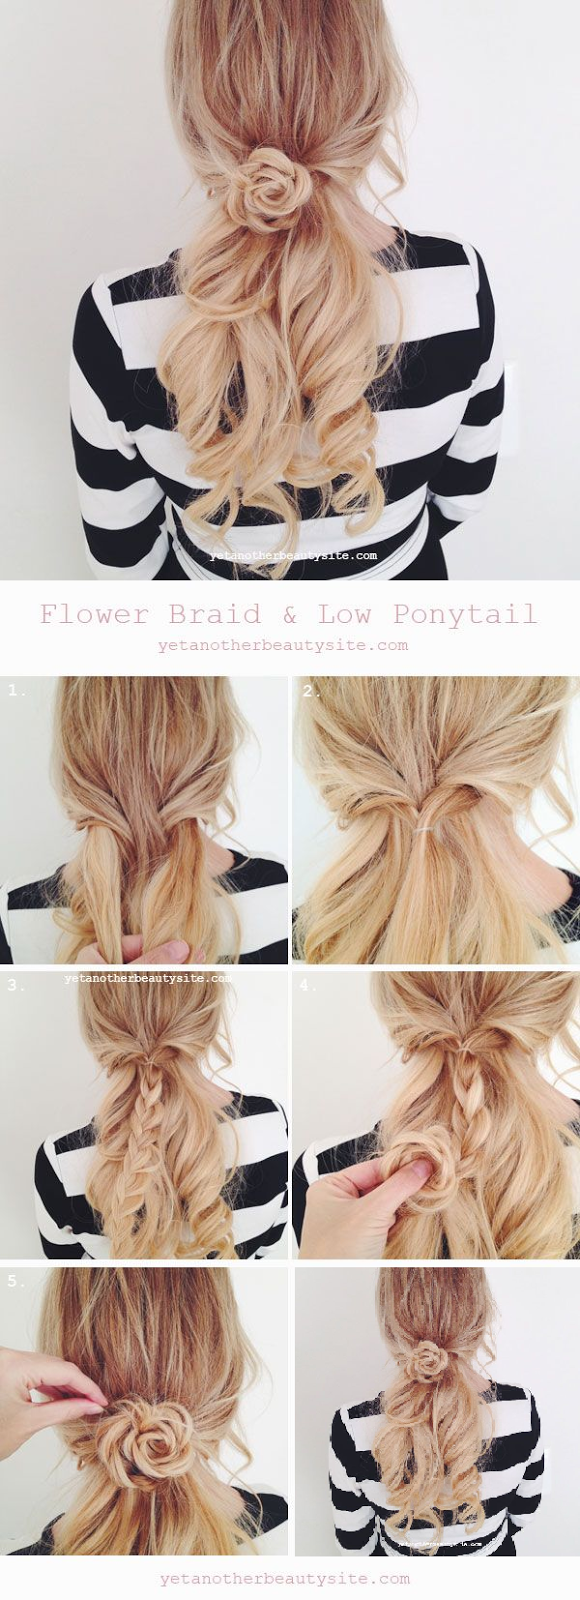 Braided flower hairstyle hair pinterest flower hairstyles